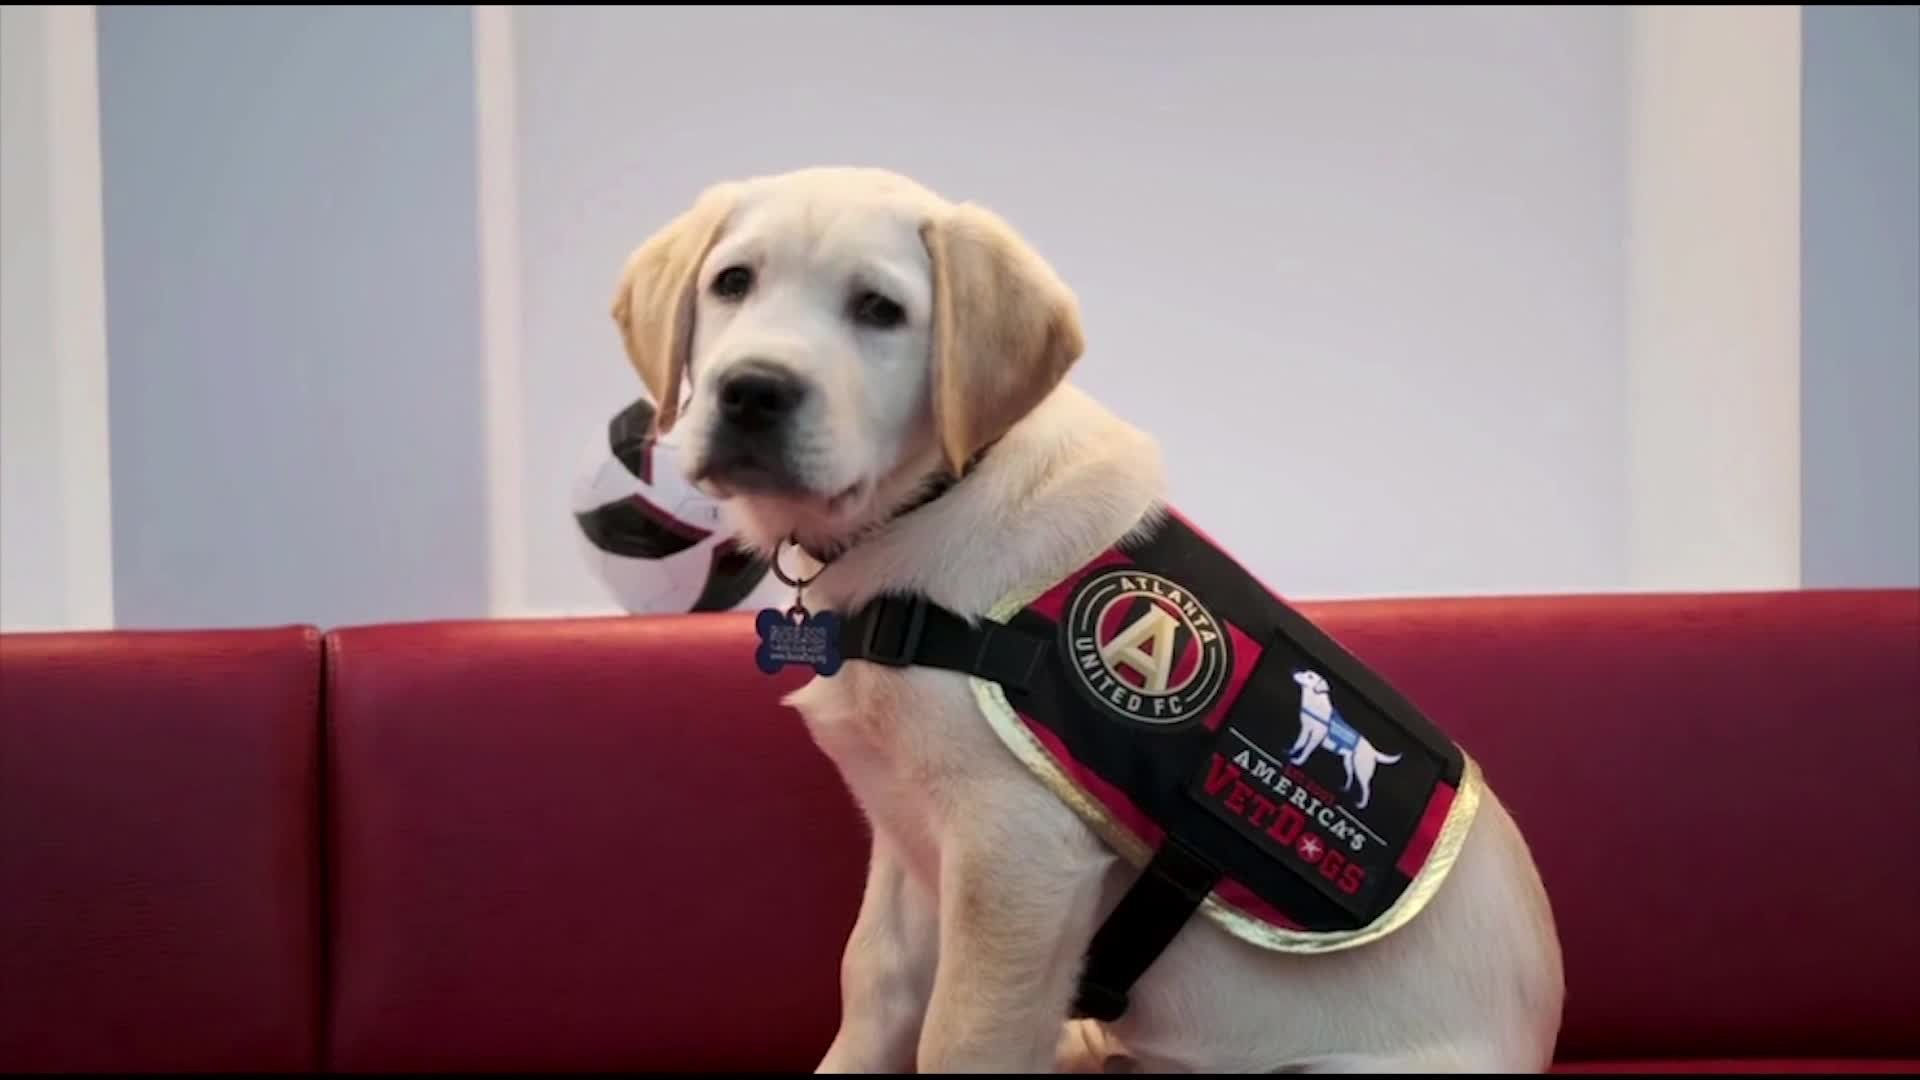 Atlanta United's latest roster addition is an utterly adorable puppy training to be a service dog